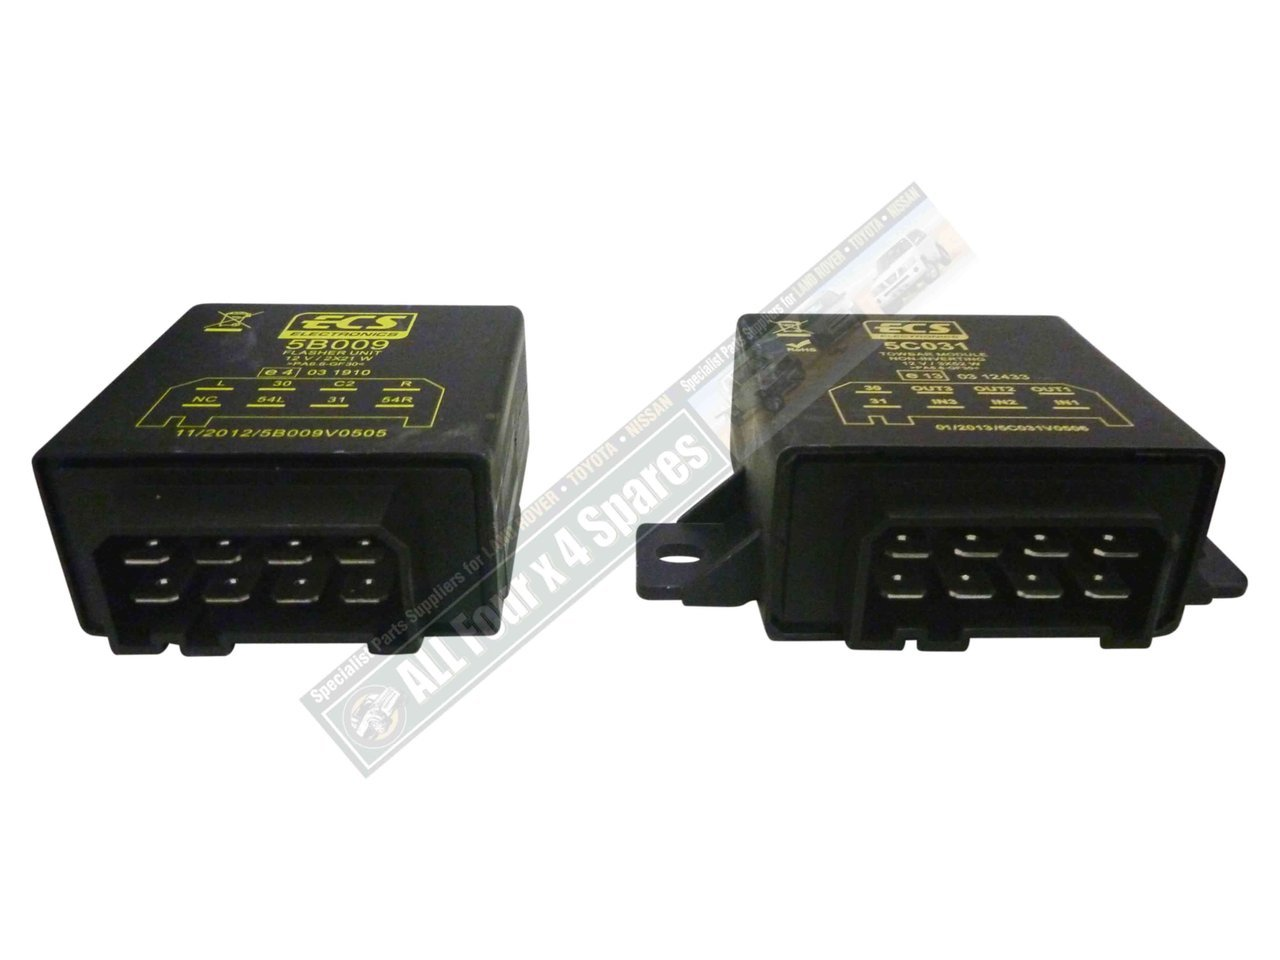 1023592 Help 4x4 Dash Switch No Power besides Aansluitschemas likewise 490610953134538381 together with Stake Pocket D Rings together with Trailer connectors in North America. on 6 pin trailer wiring